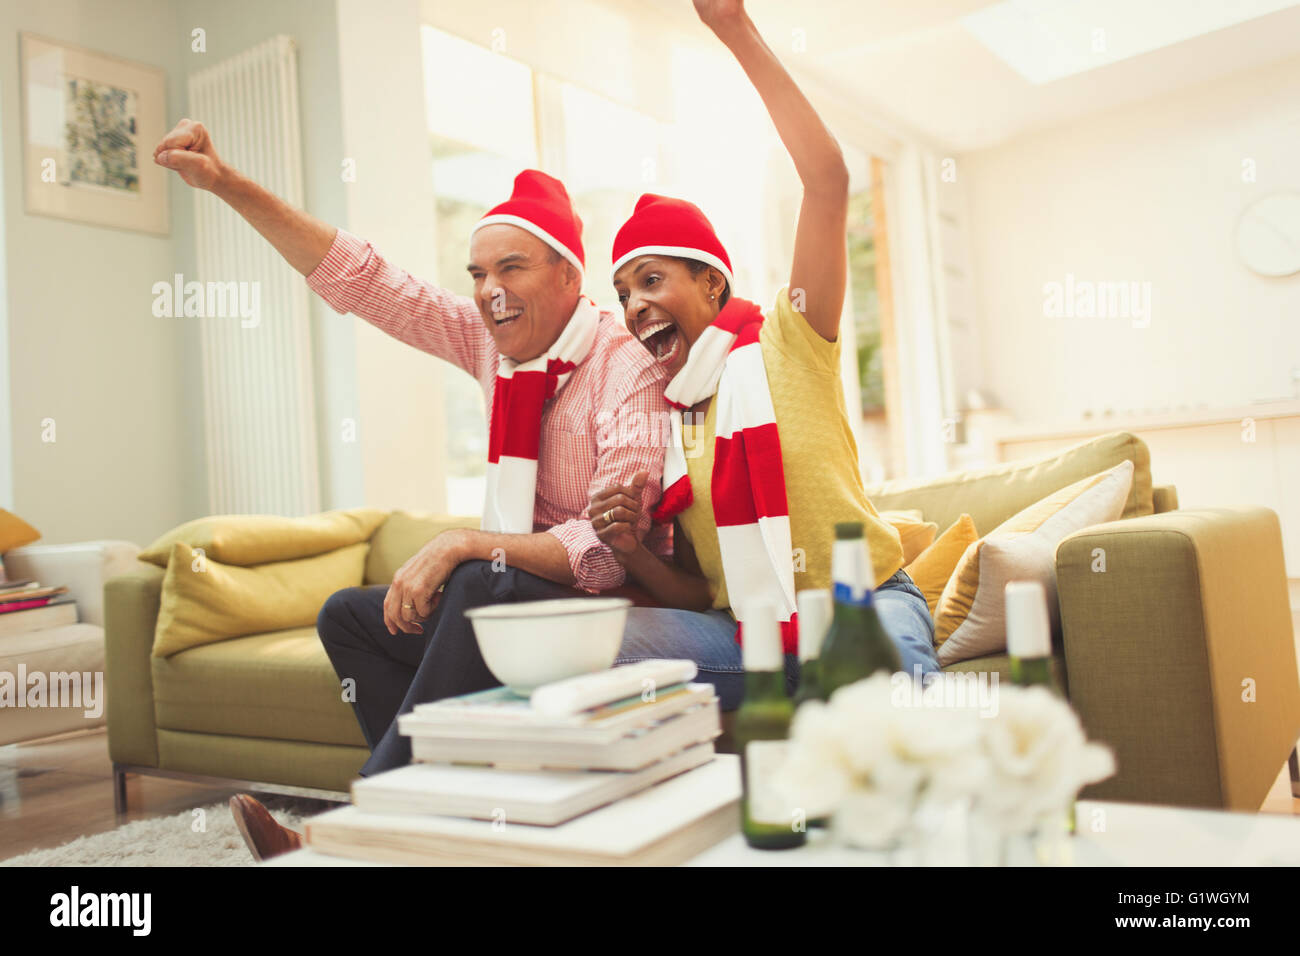 Enthusiastic mature couple in matching hats and scarves cheering watching TV sports event - Stock Image